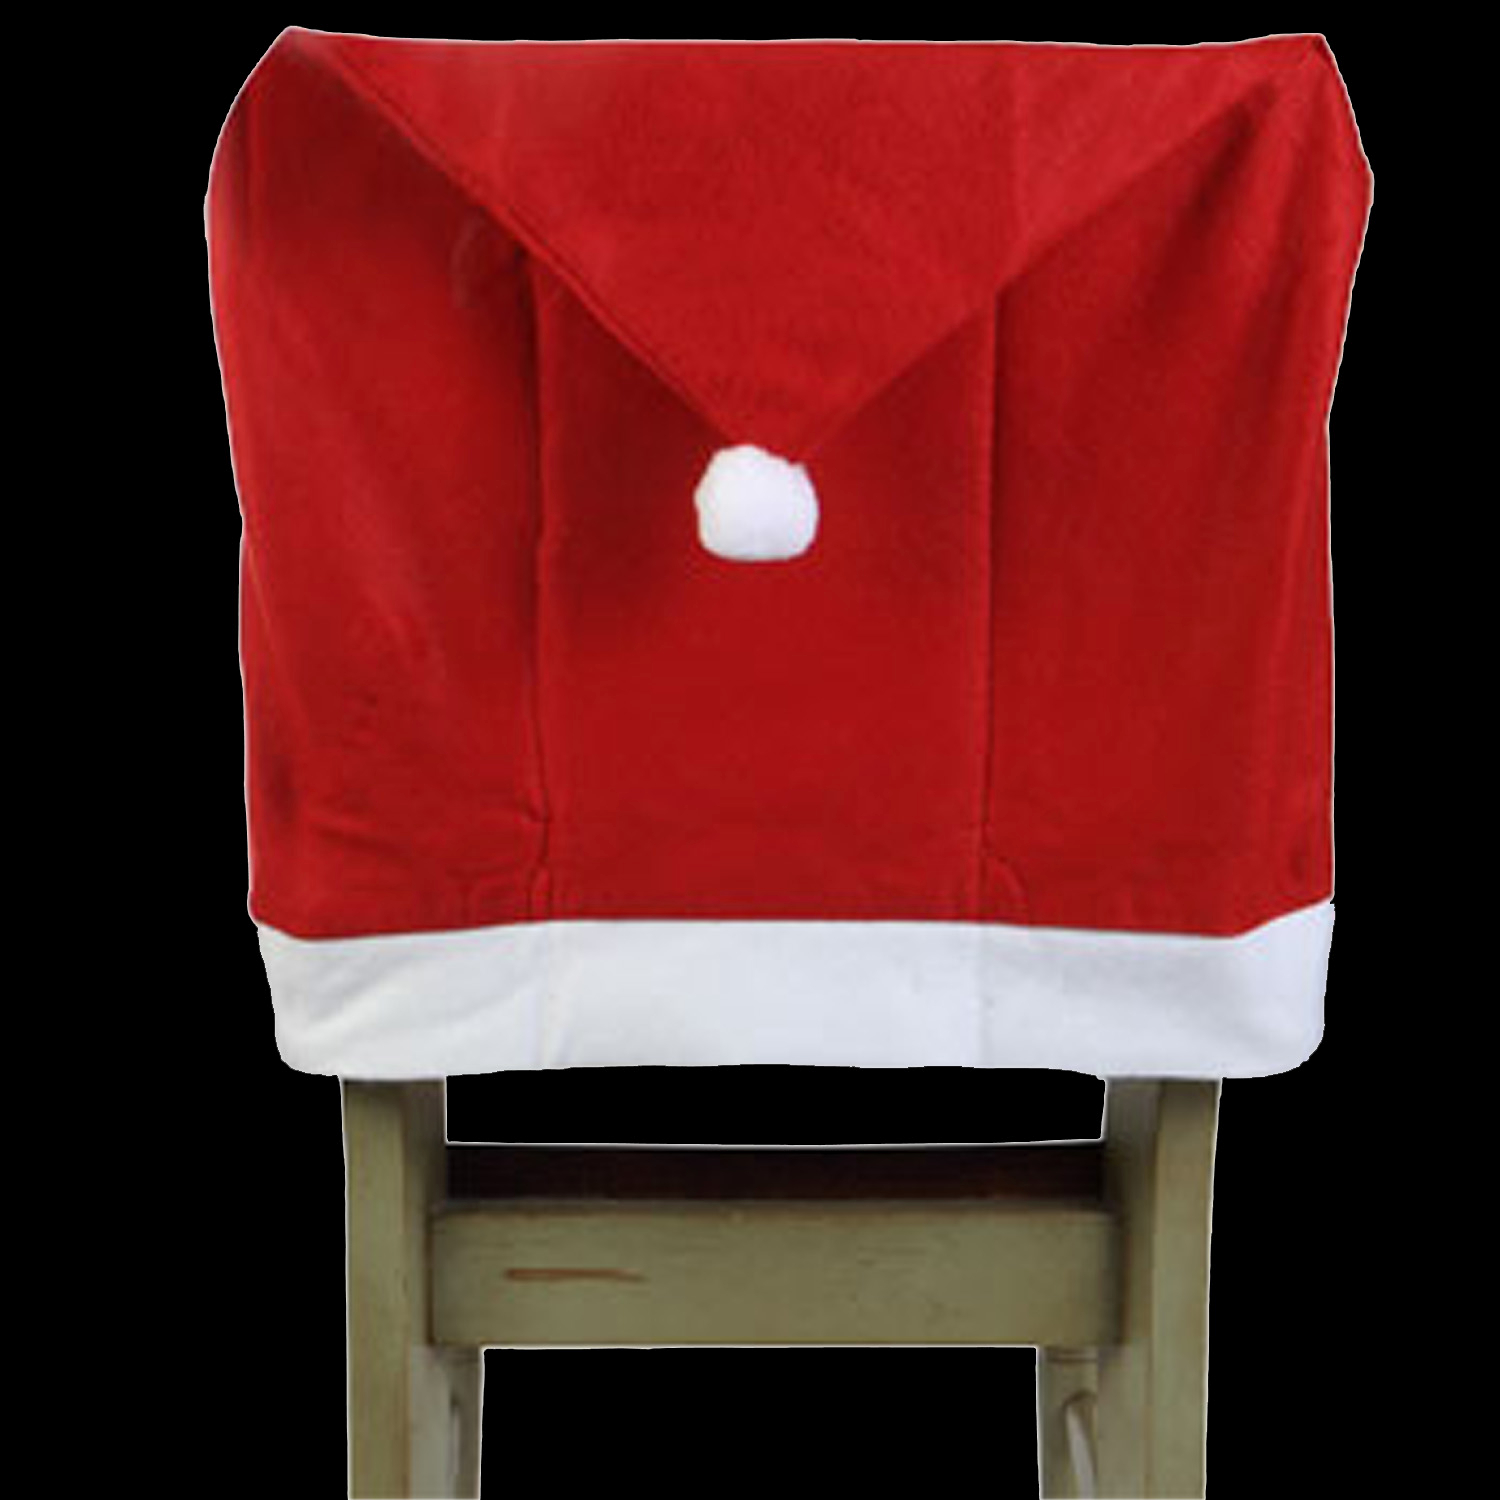 b6cf2c9e9a8d0 Fun Christmas Holiday SANTA CLAUS HAT CAP CHAIR BACK COVER Decorations.  Non-Woven RED